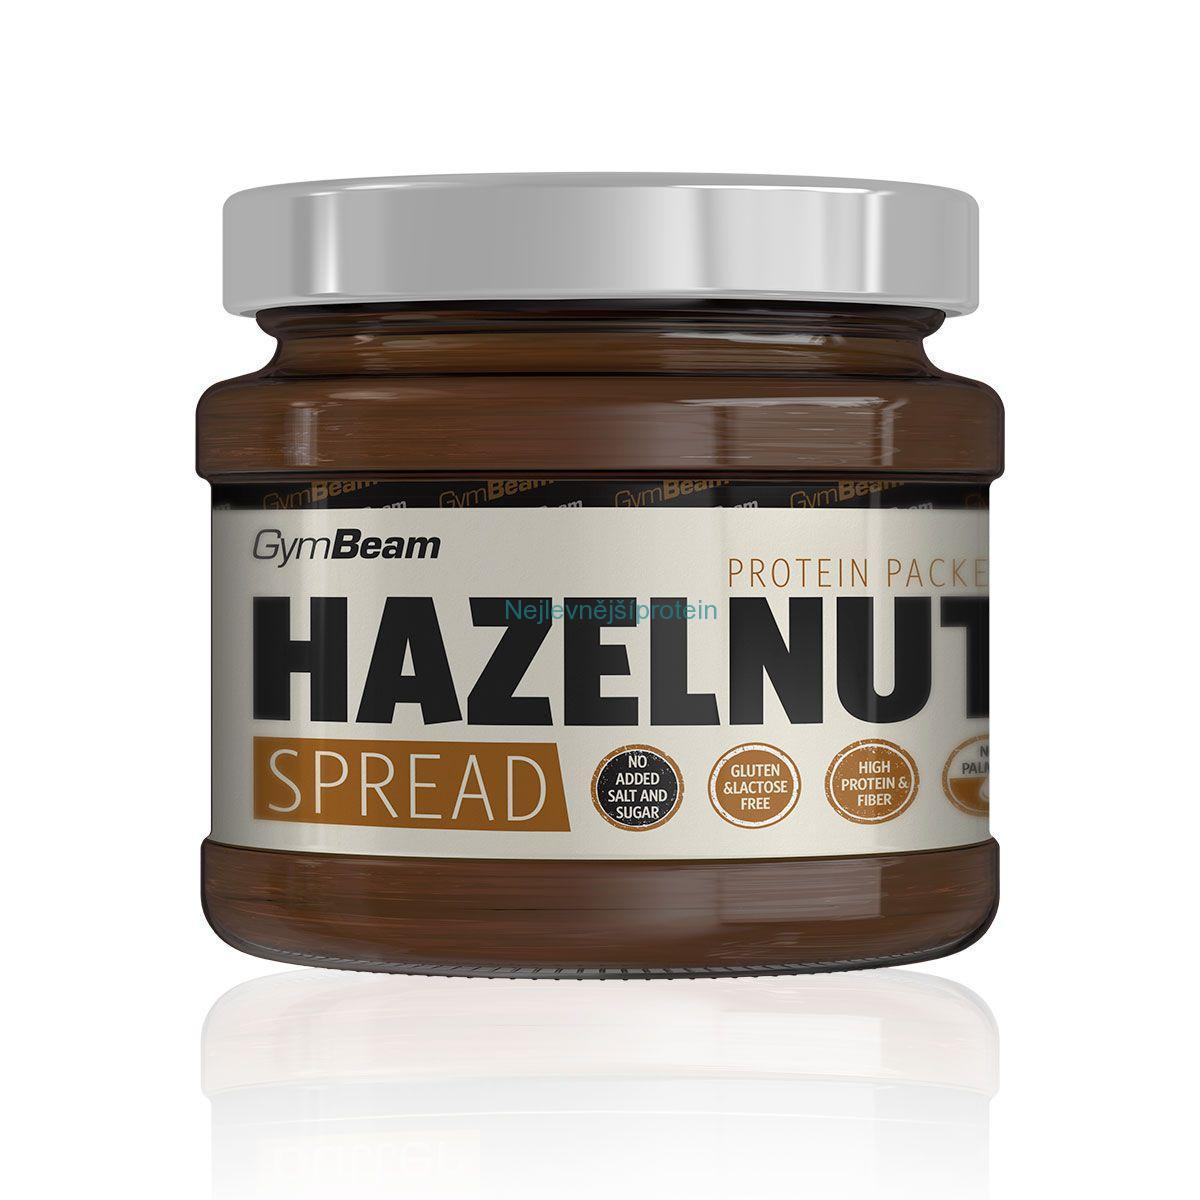 GymBeam Hazelnut Spread 340g